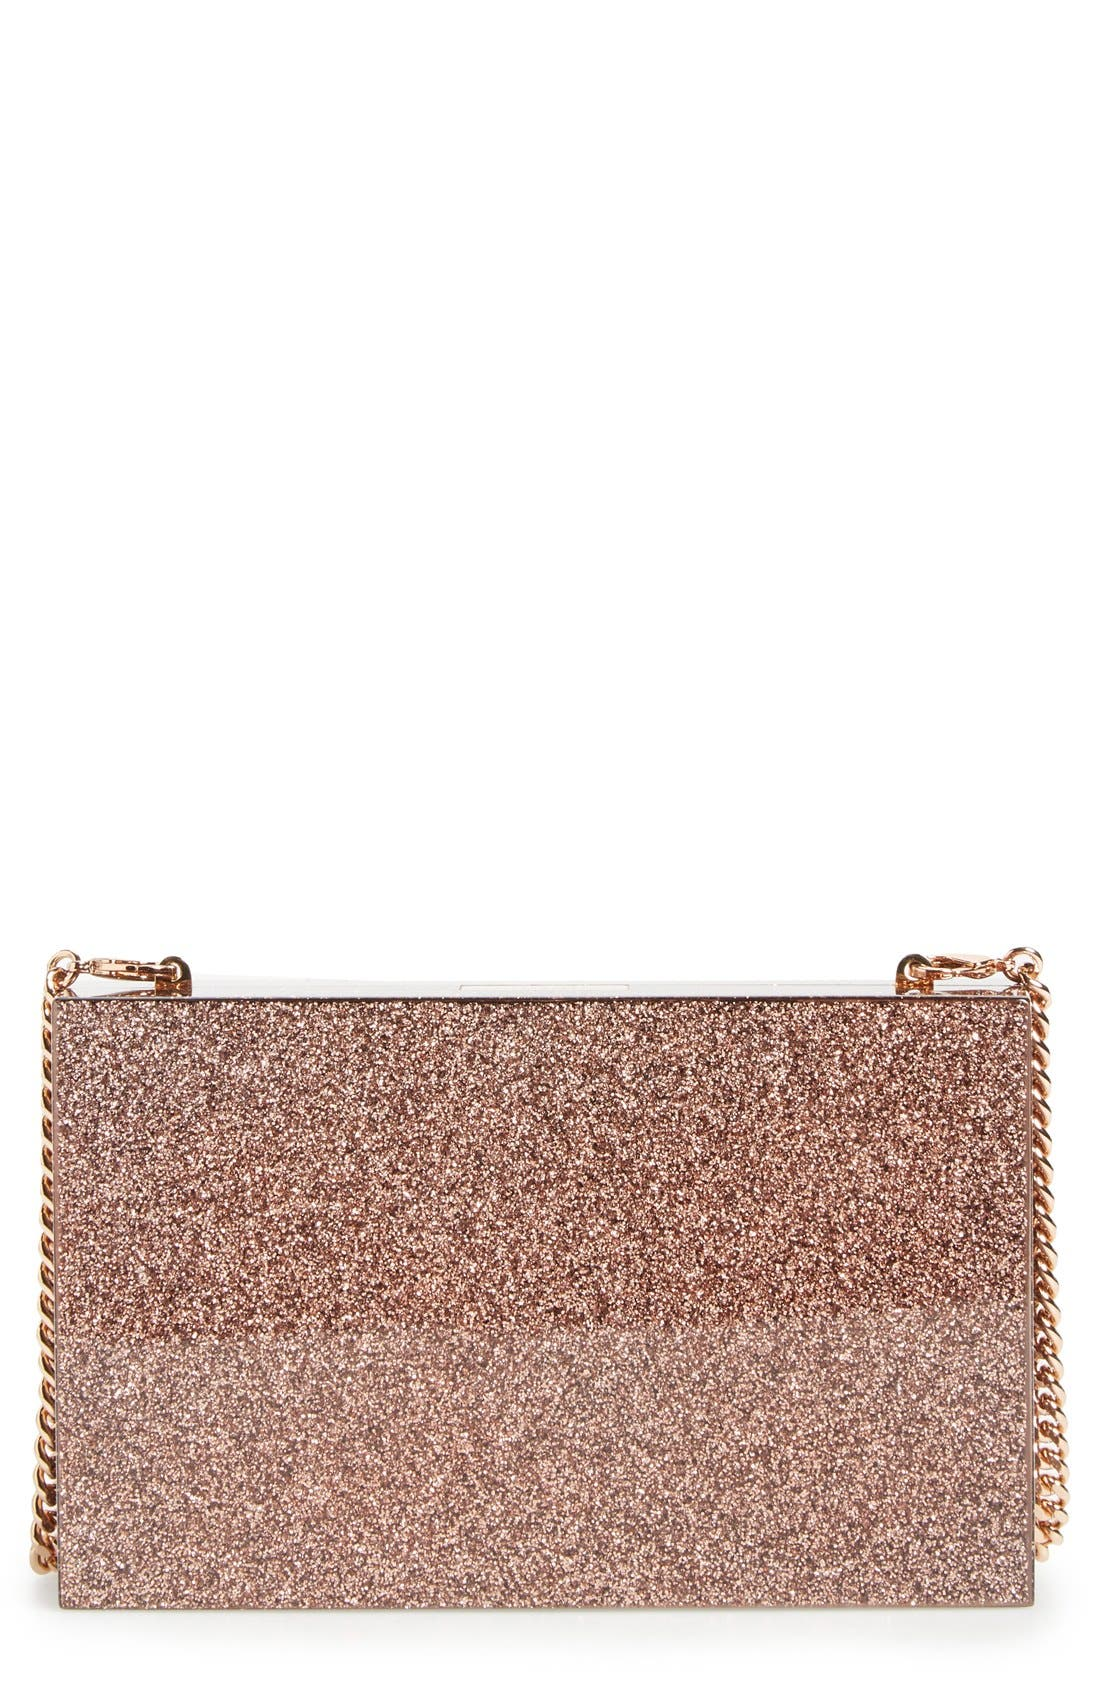 Main Image - Stella McCartney 'Mix Glitter' Box Minaudière